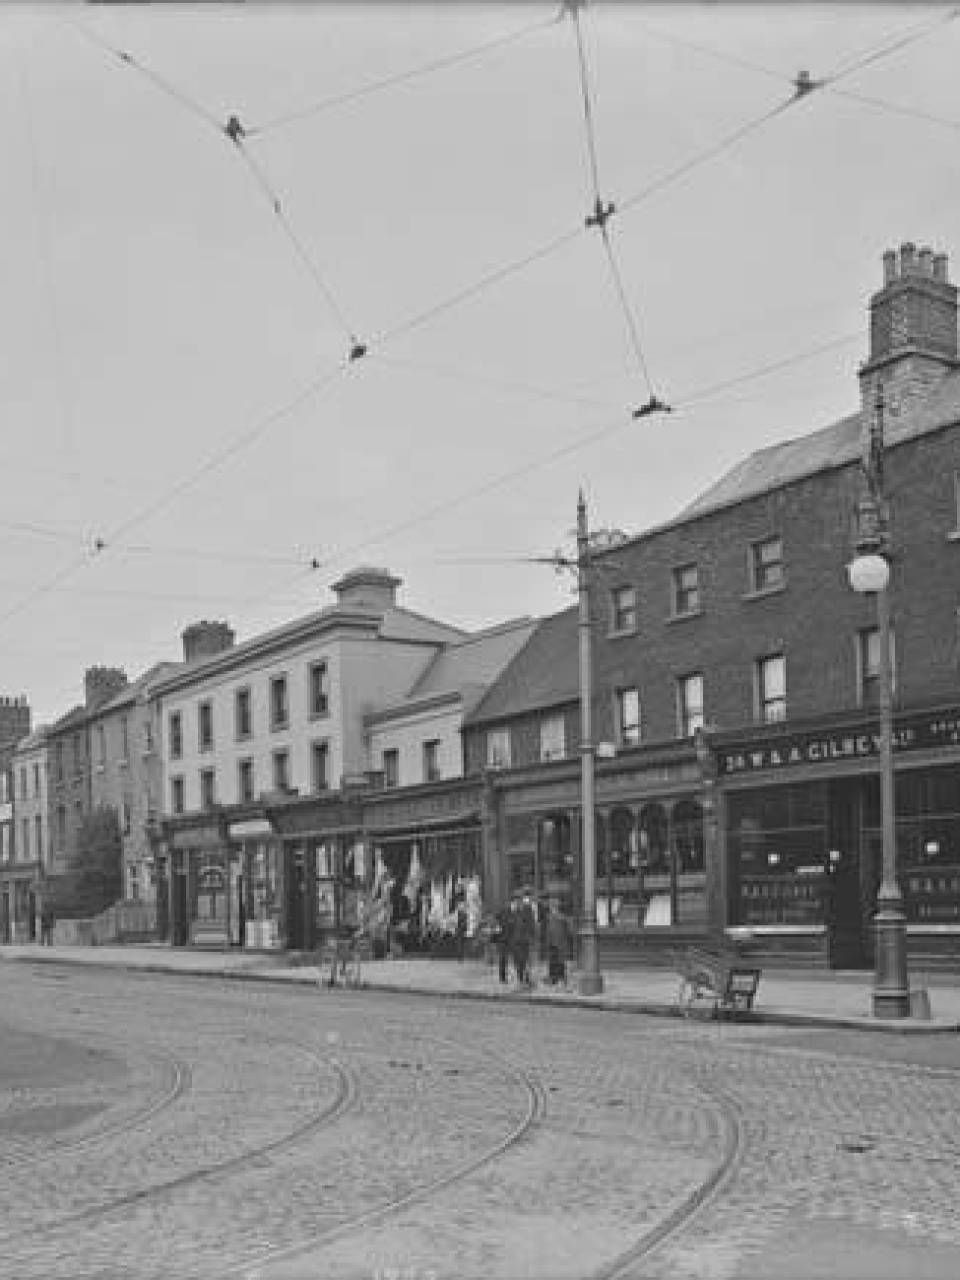 Writer Jessica tells us about her love affair with Cork city